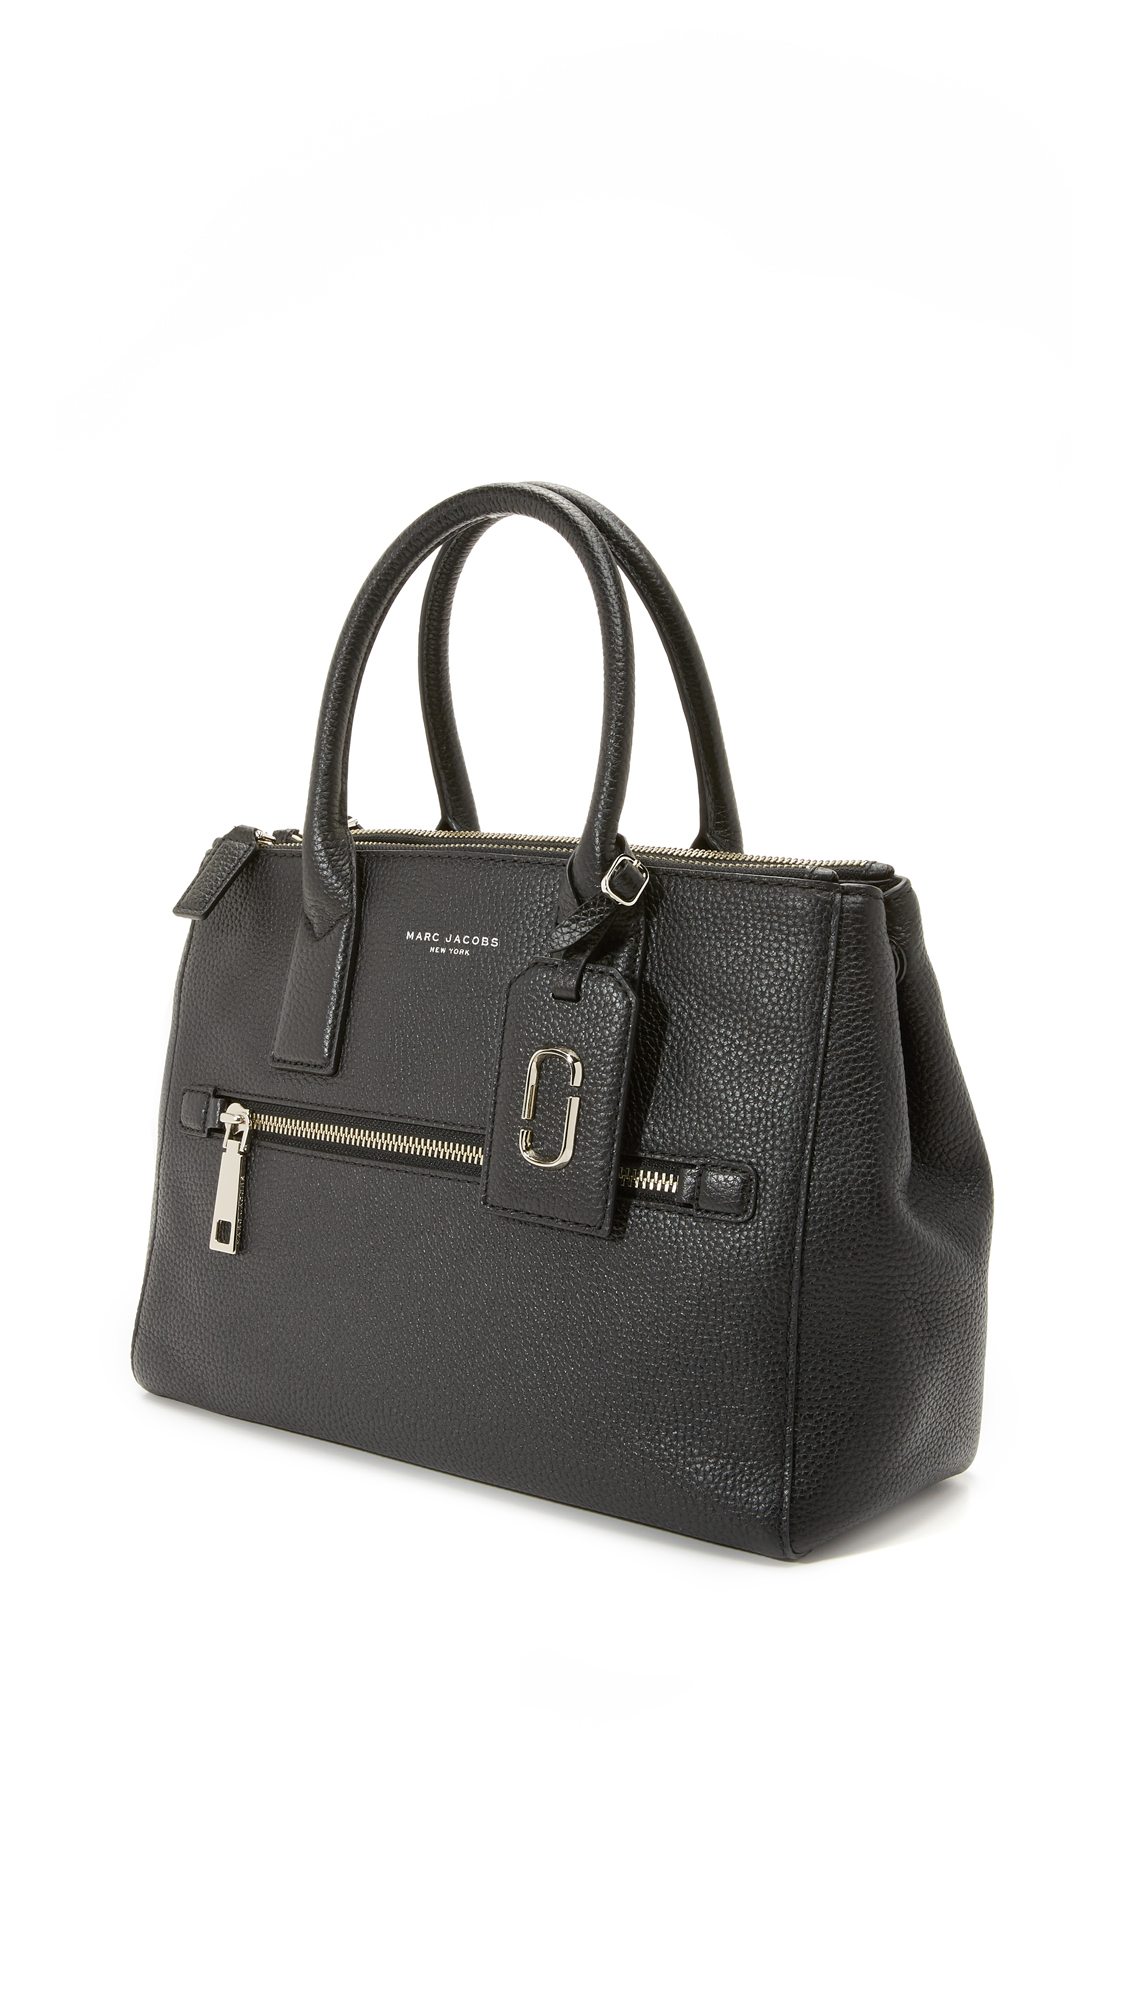 Marc Jacobs Leather Gotham East / West Tote in Black